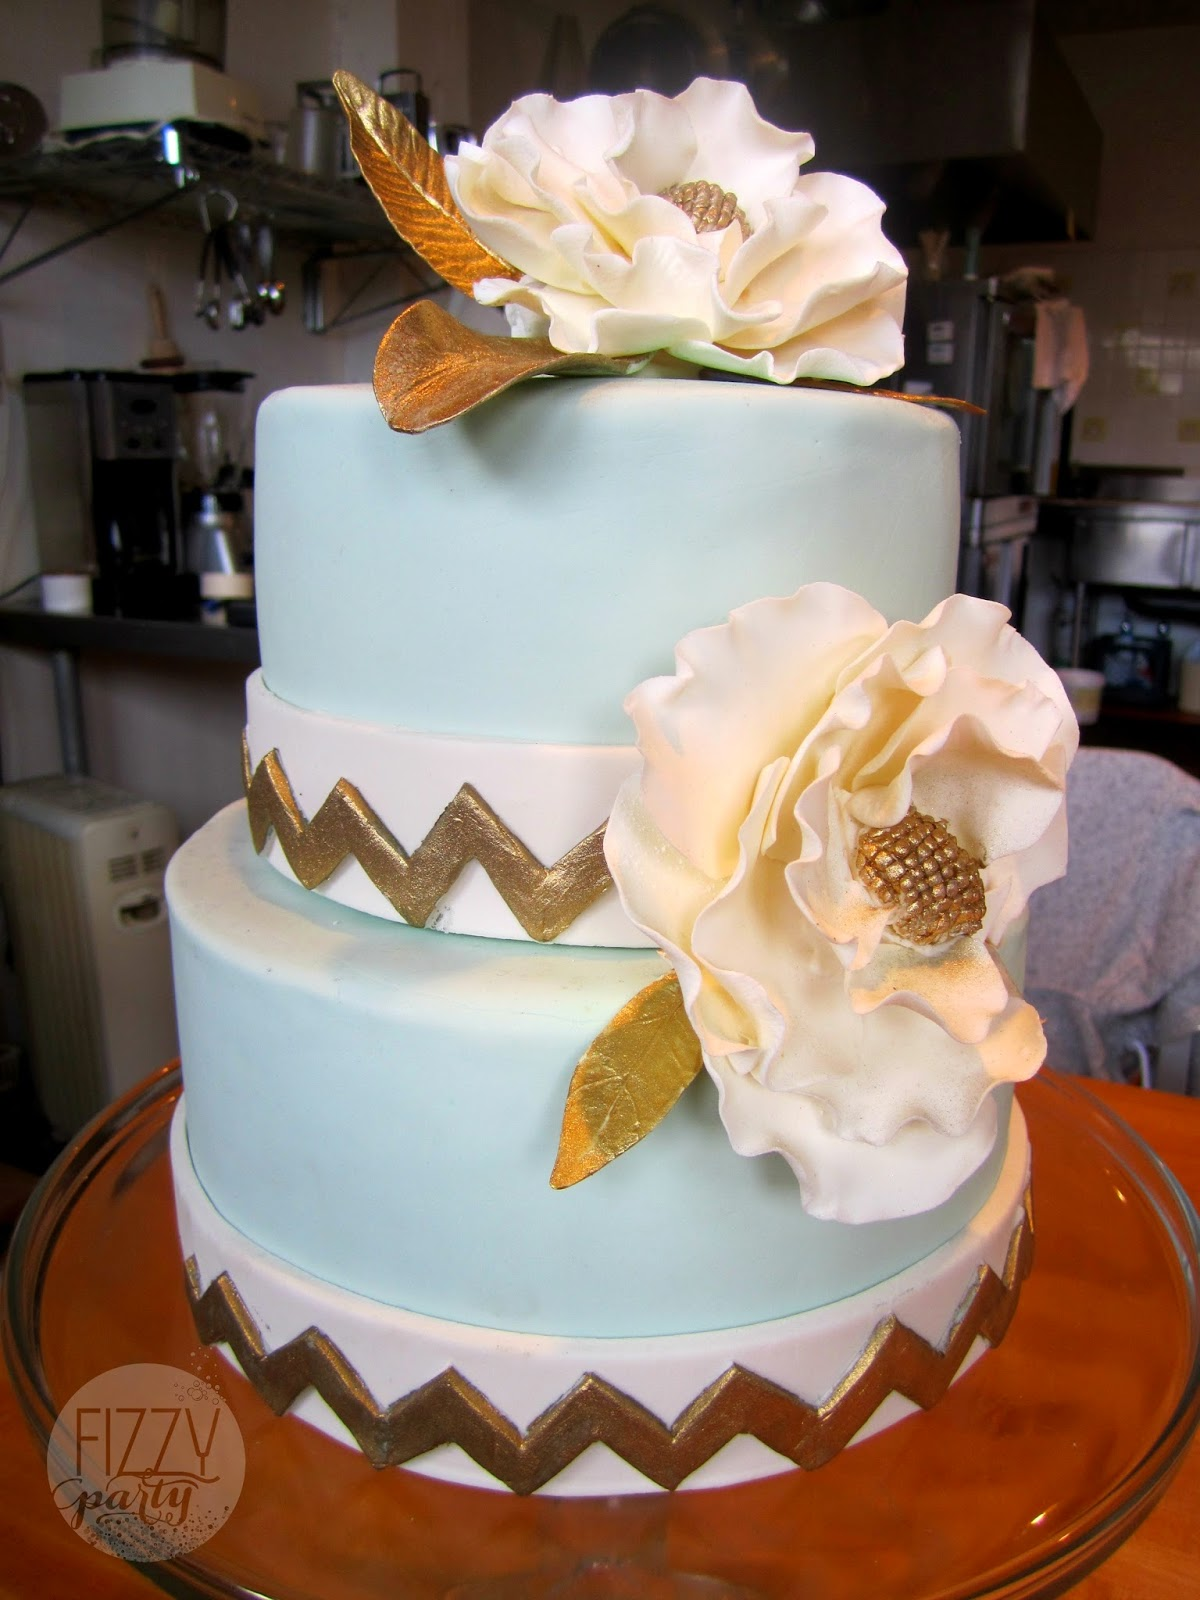 Dream Cakes wedding cake with fondant flowers